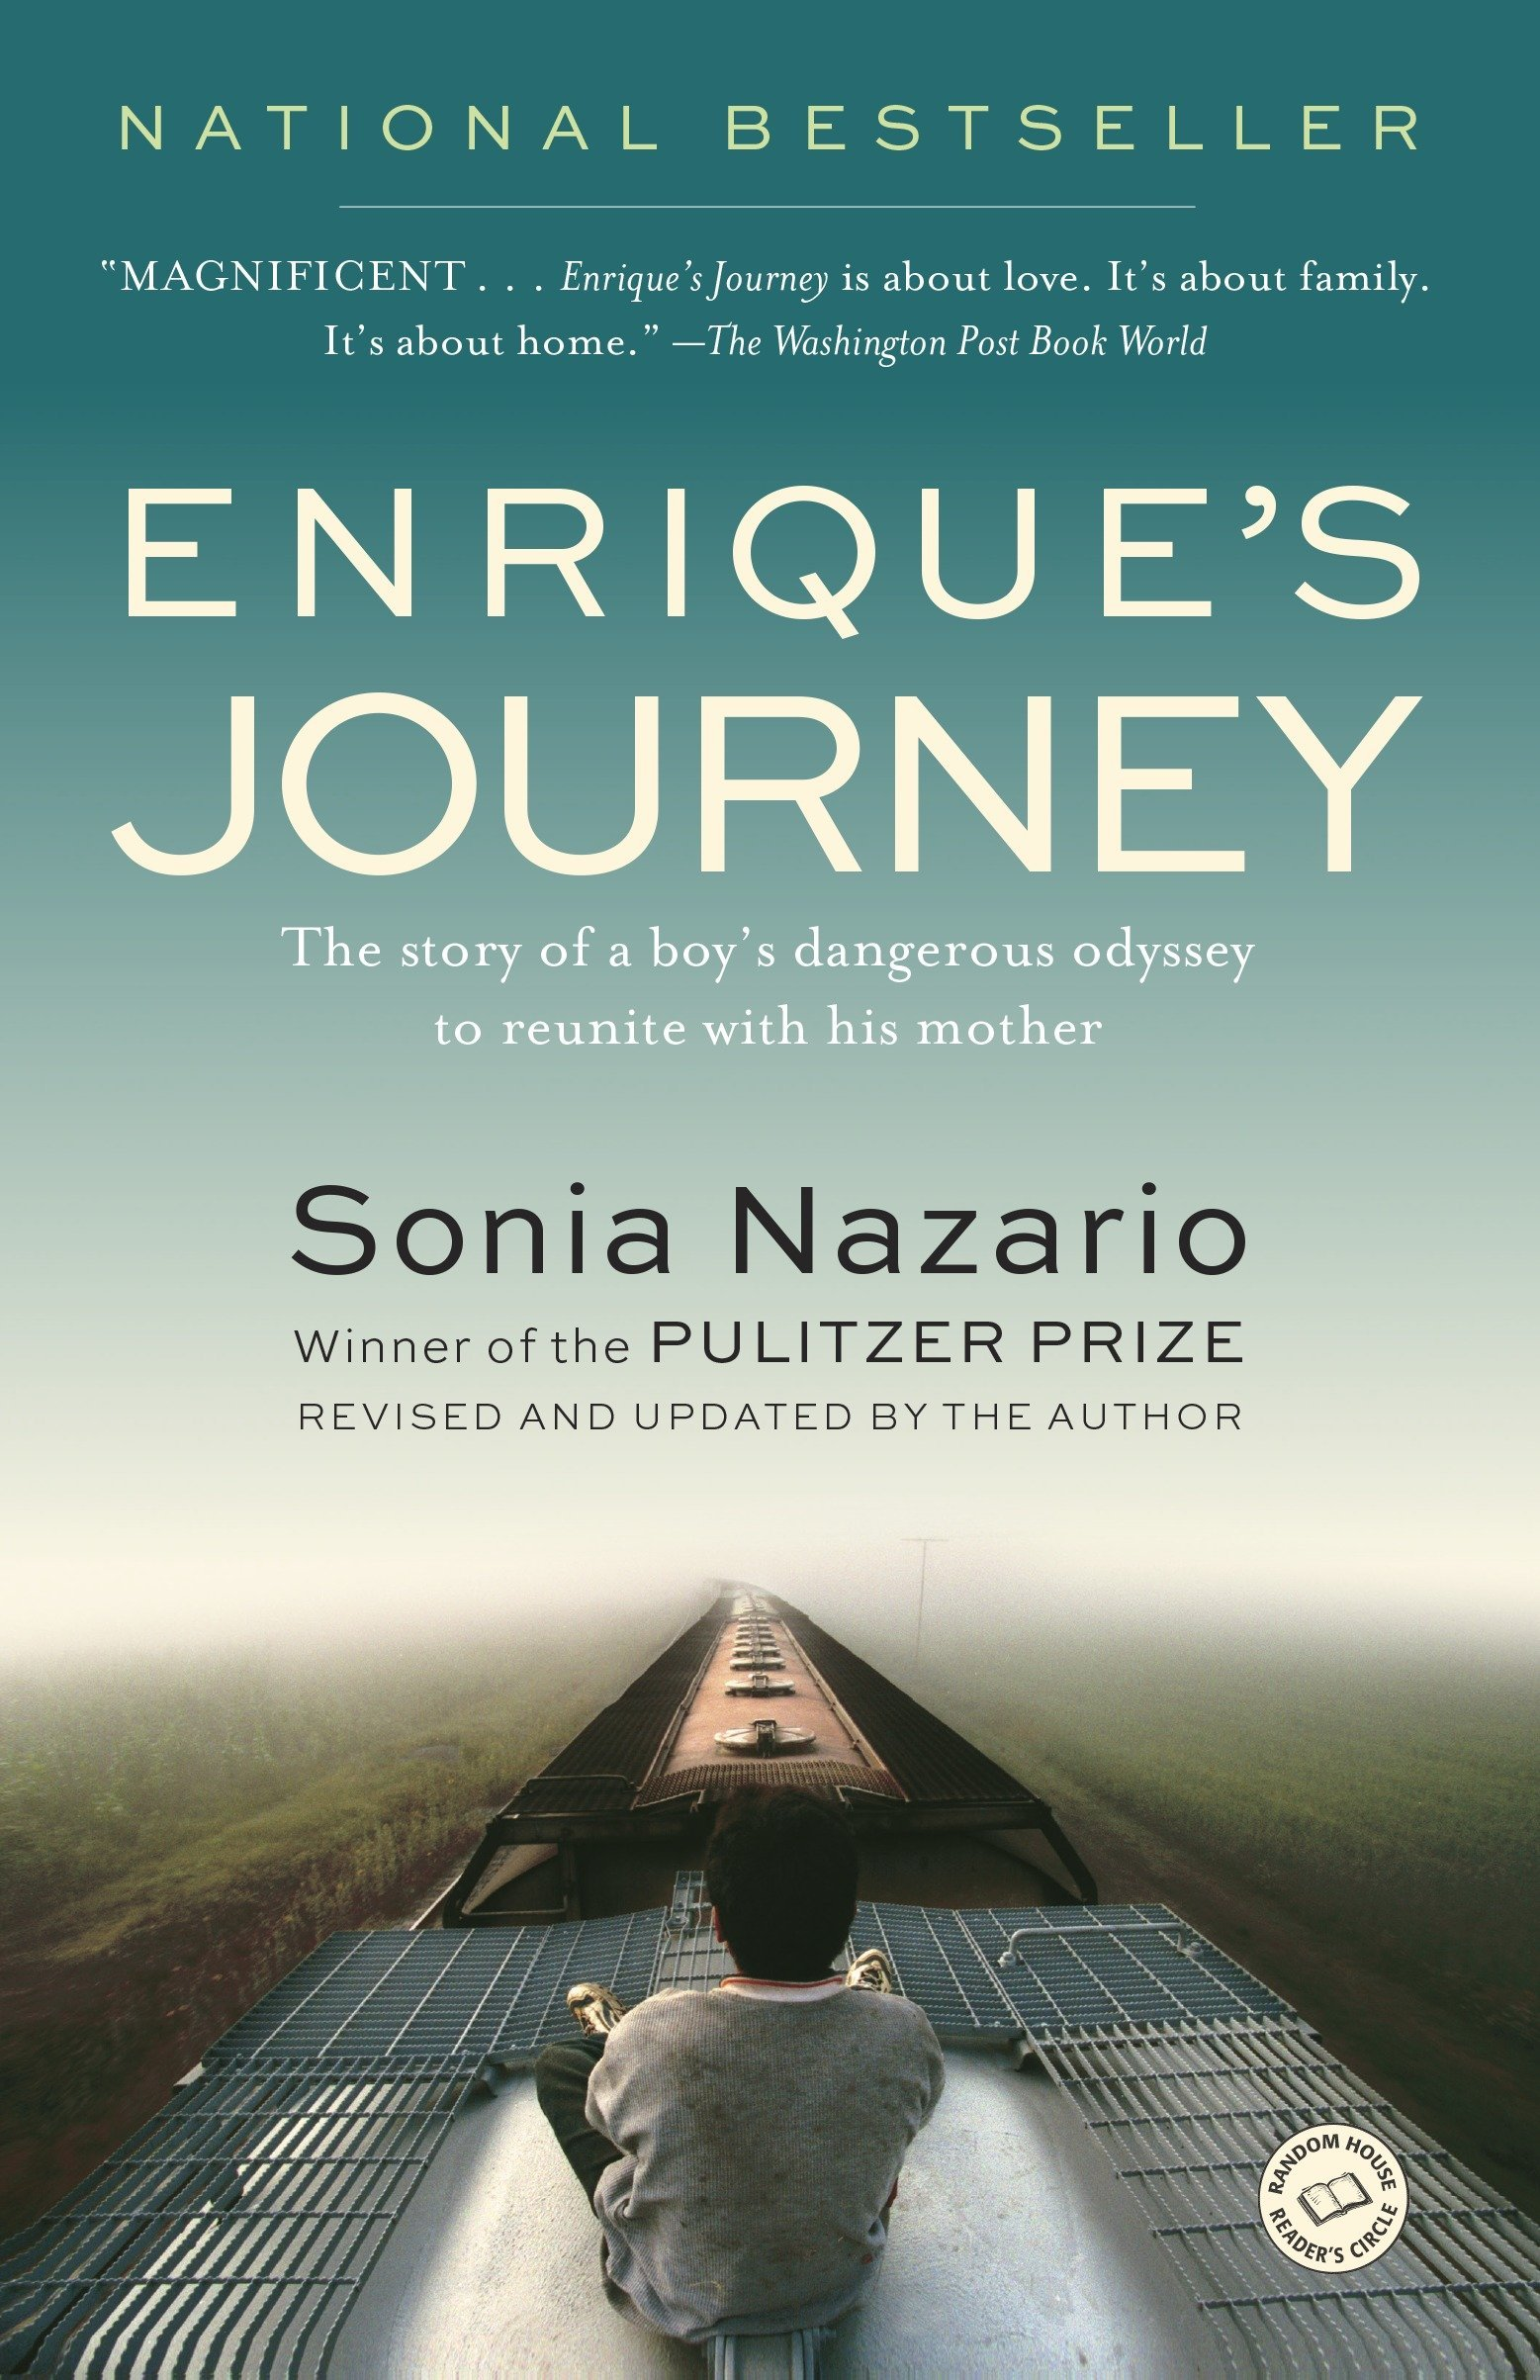 Enrique's Journey: The Story of a Boy's Dangerous Odyssey to Reunite with His Mother Paperback – January 2, 2007 Sonia Nazario Random House Trade Paperbacks 0812971787 Emigration & Immigration